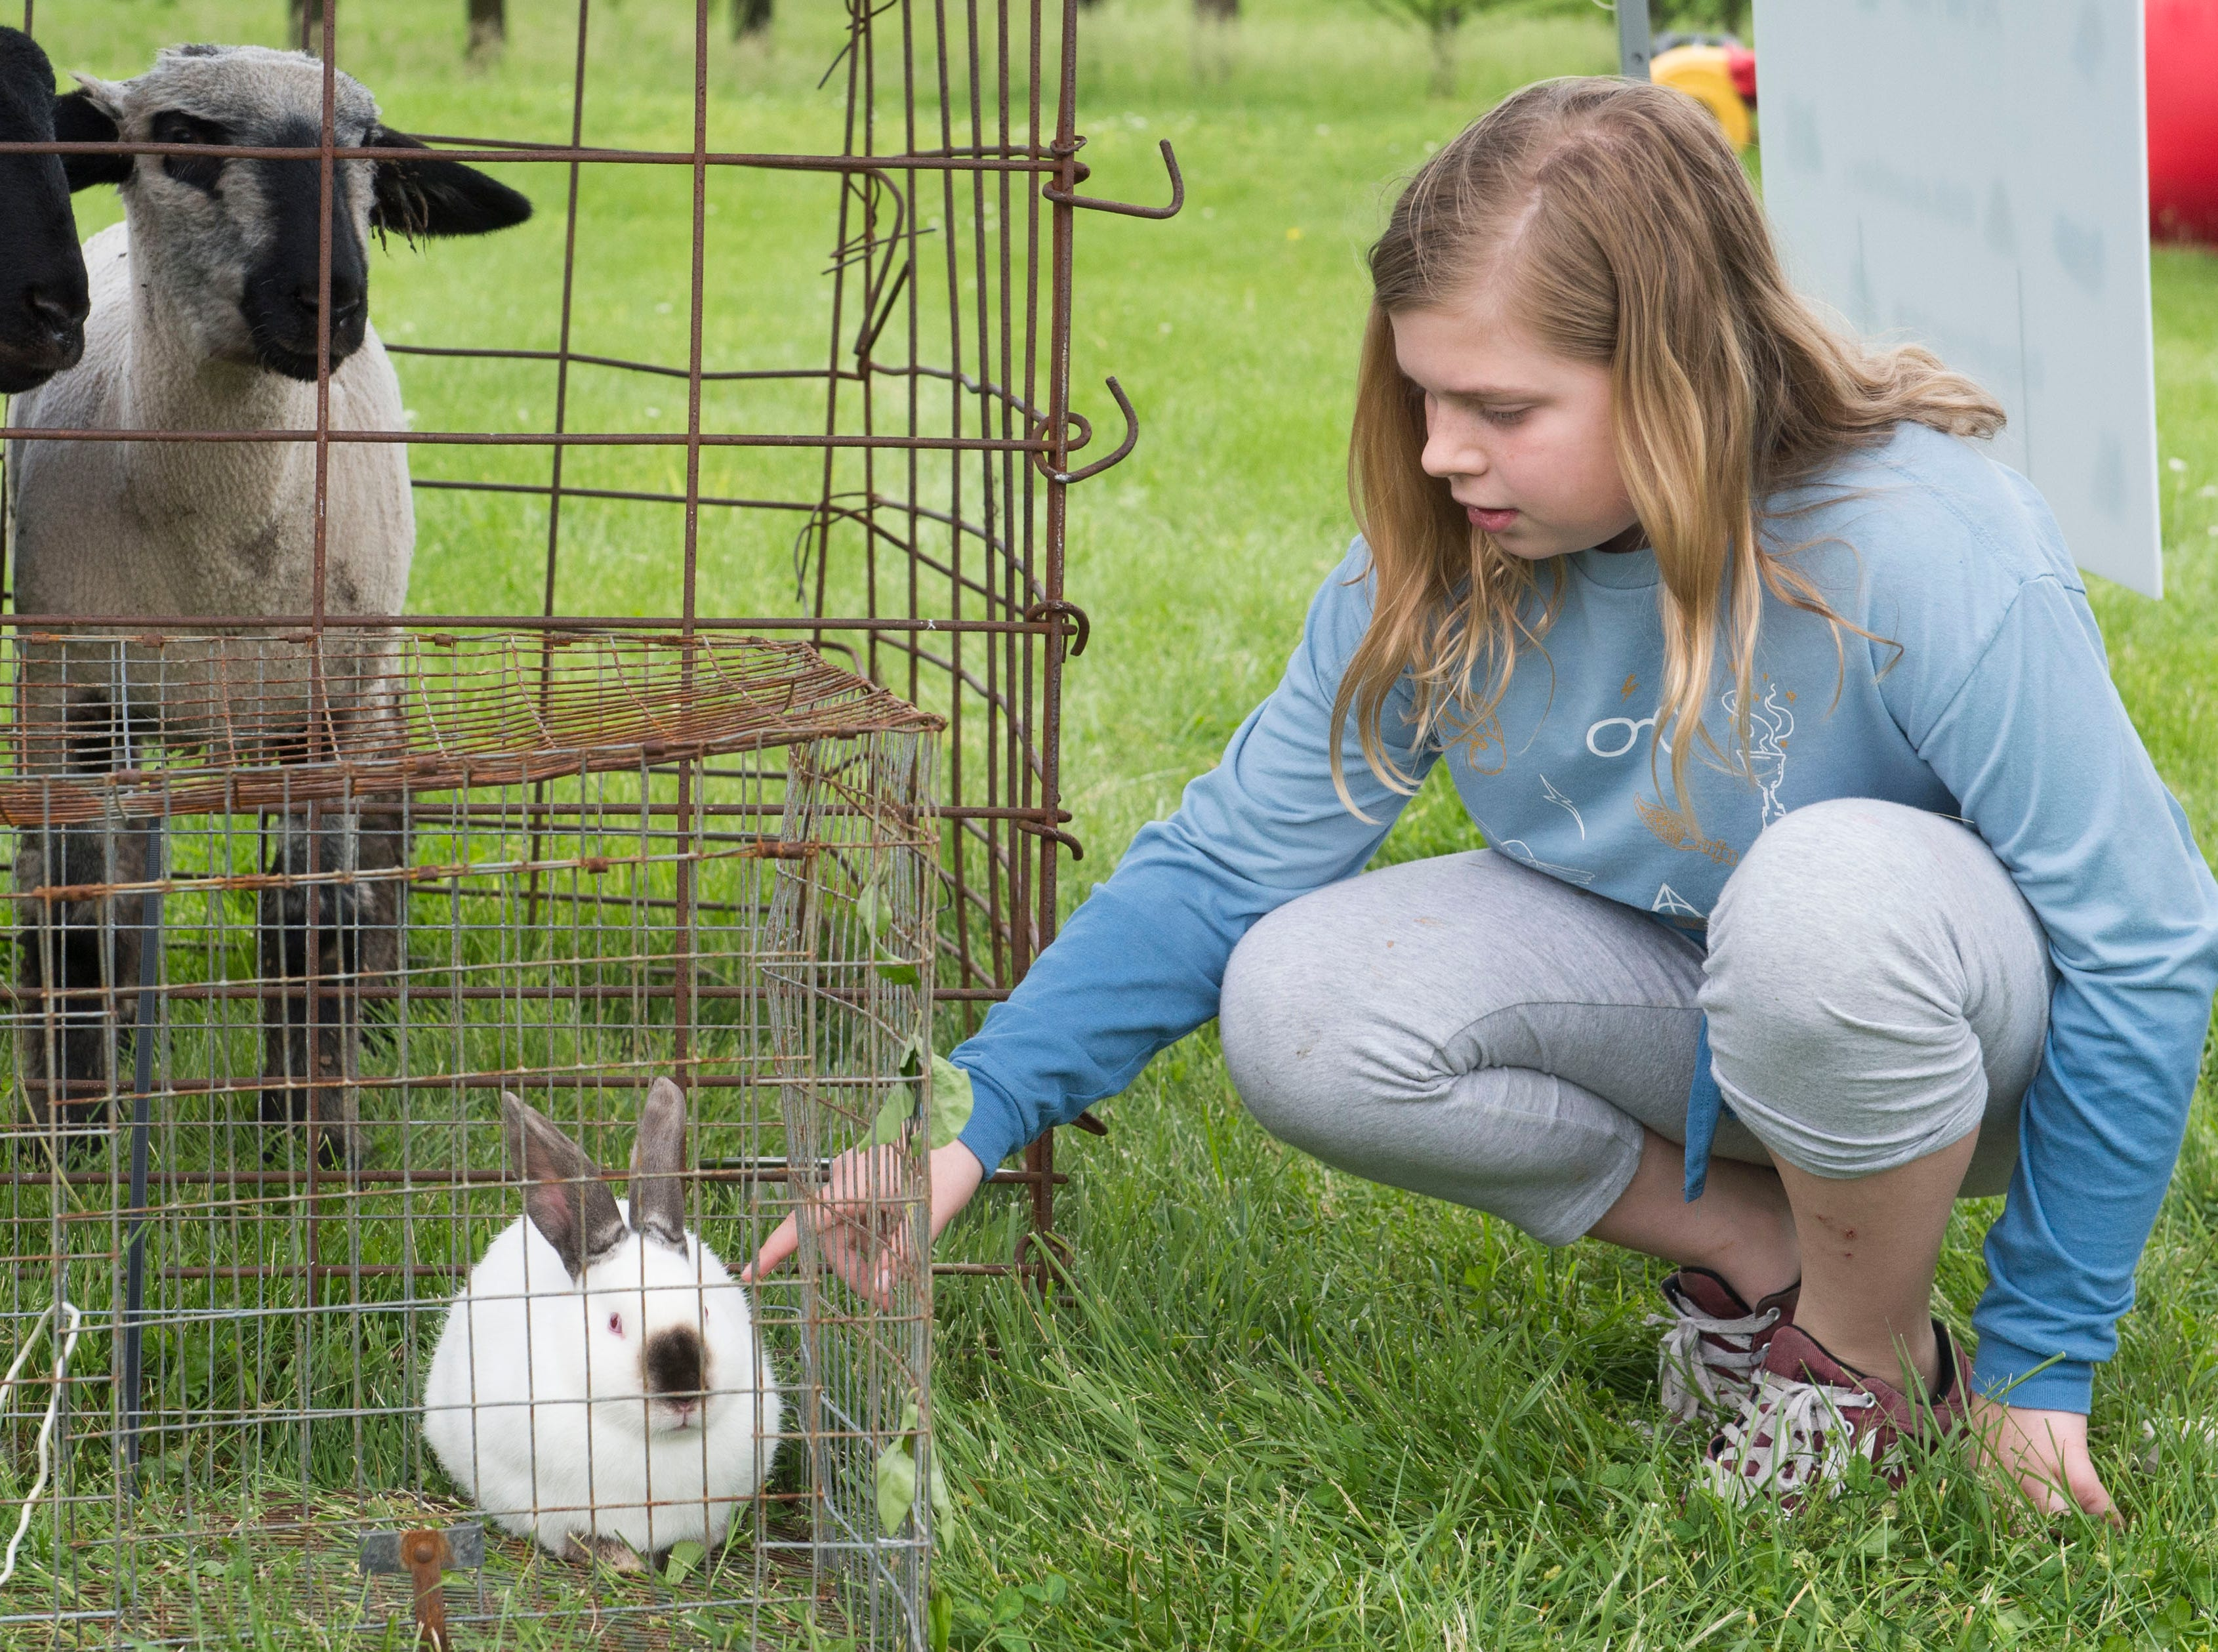 Jude Koch, 10, pets a rabbit during the 2019 Spirit Fest Saturday, May 11, 2019. Spirit Fest is a day of fun and activities that benefits the Spirit Medical Fund which raises money for the Evansville Animal Care and Control shelter.